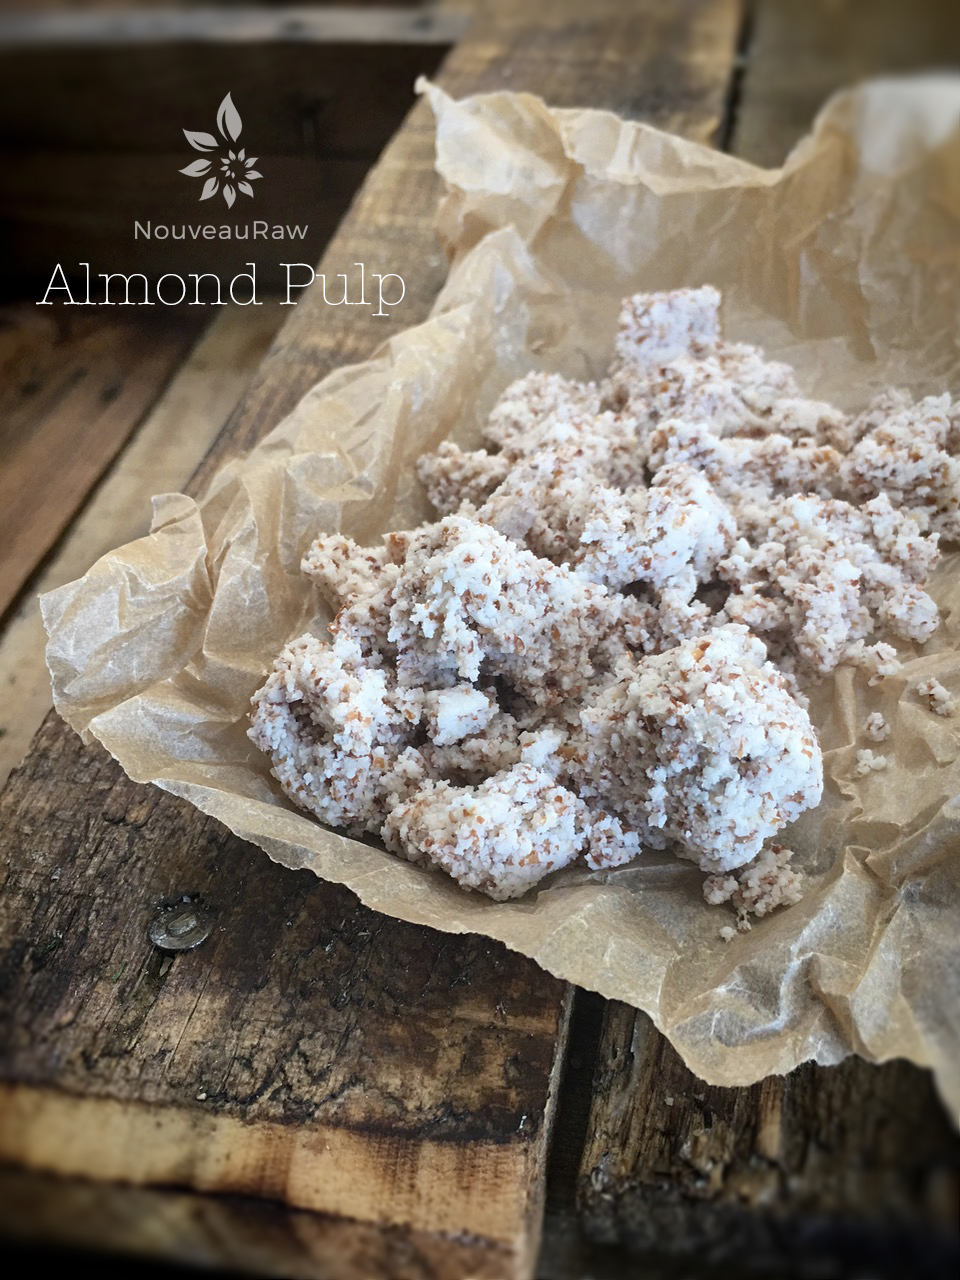 wet almond pulp on a piece of parchment paper